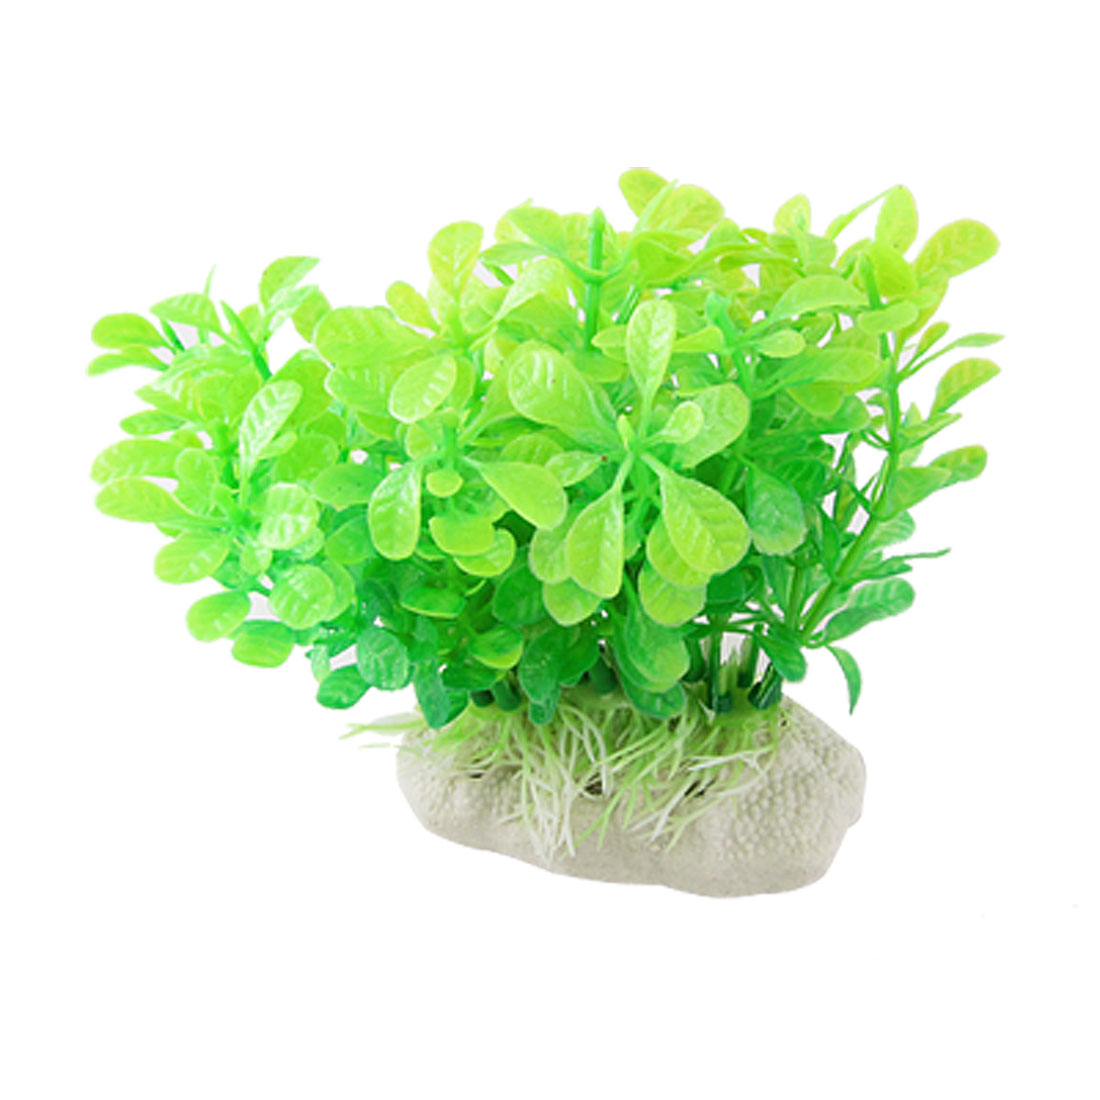 Aquarium Fish Tank Decoration Grass Ceramic Base Green Leaf Plastic Plants